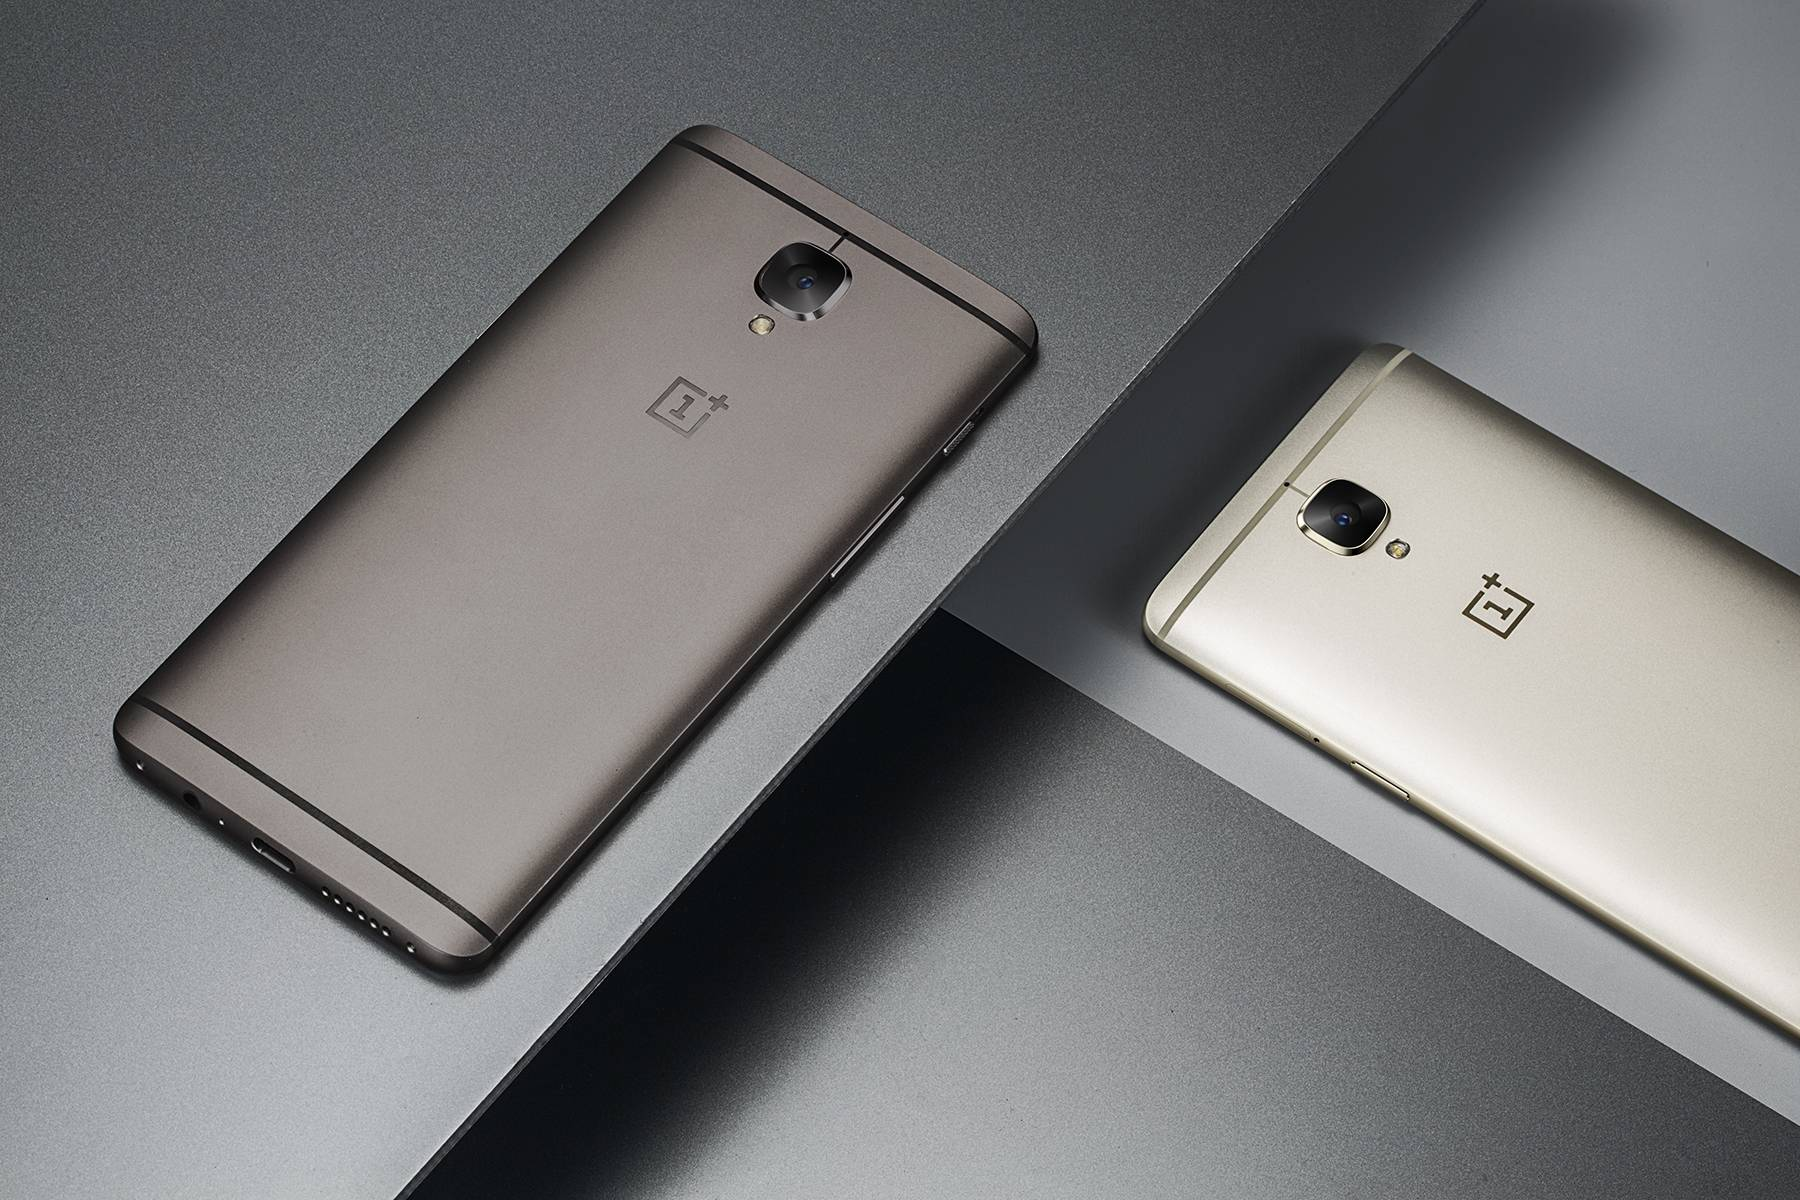 oneplus 3t Hao Ying